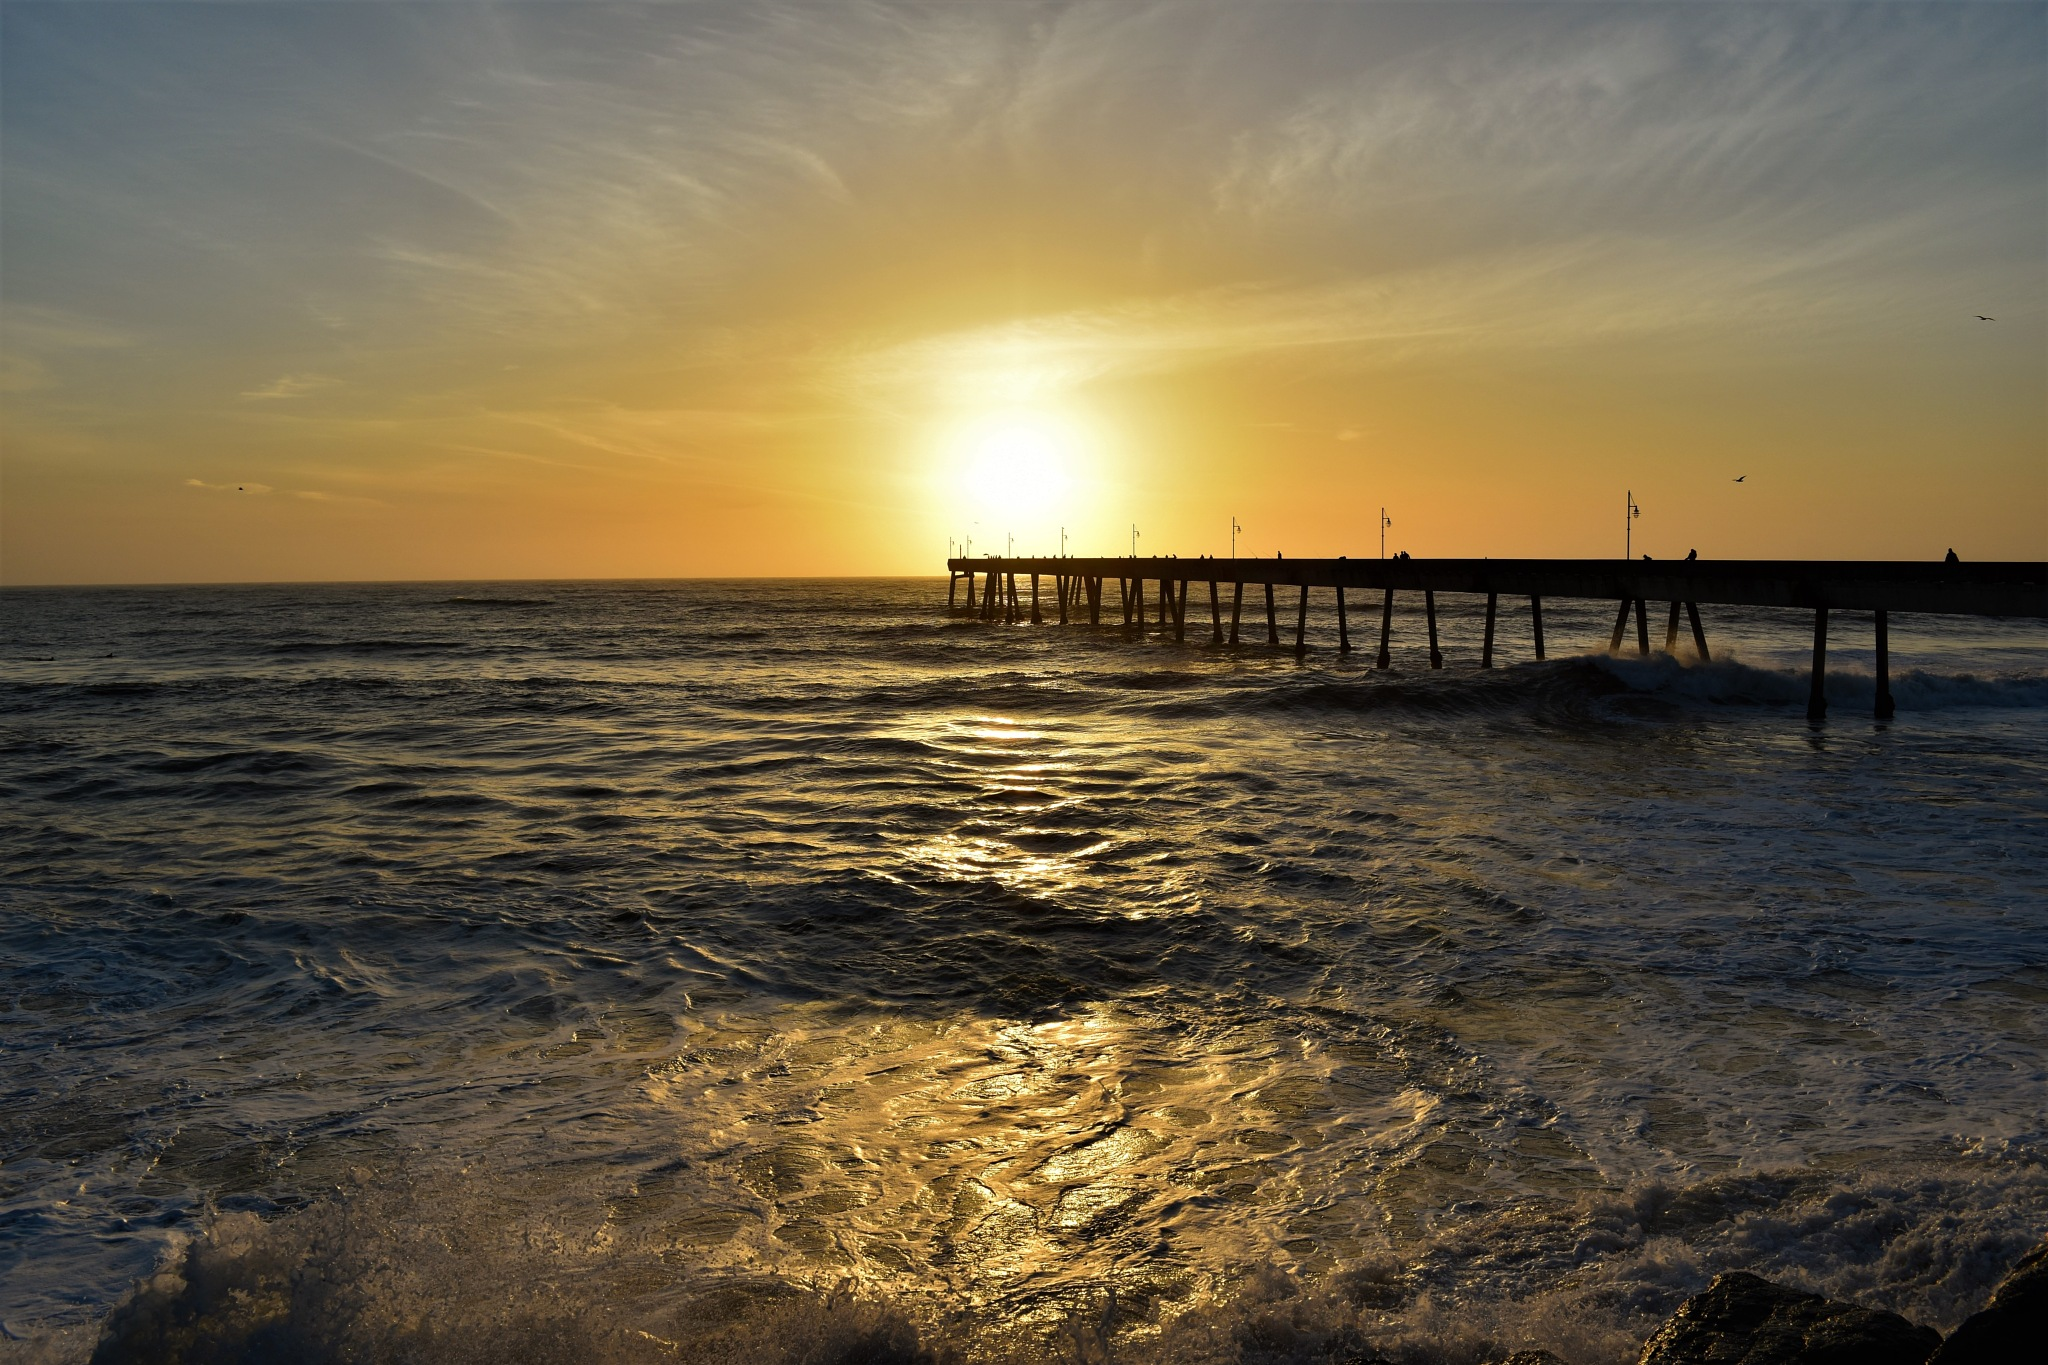 Sunset at the Pier by Gerard Francis Corbett